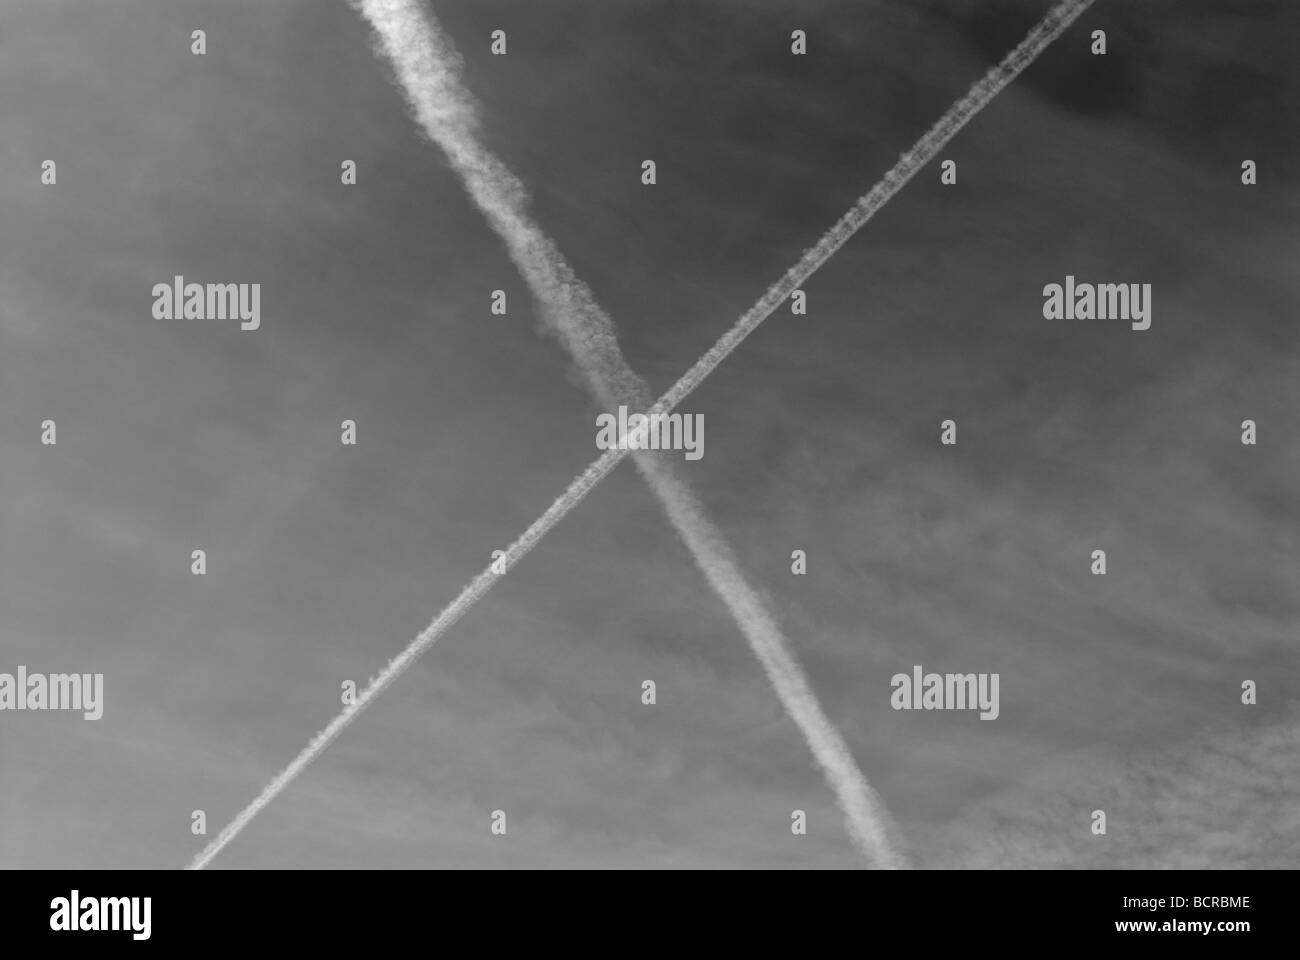 VAPOR TRAIL SKY BACKGROUND - Stock Image